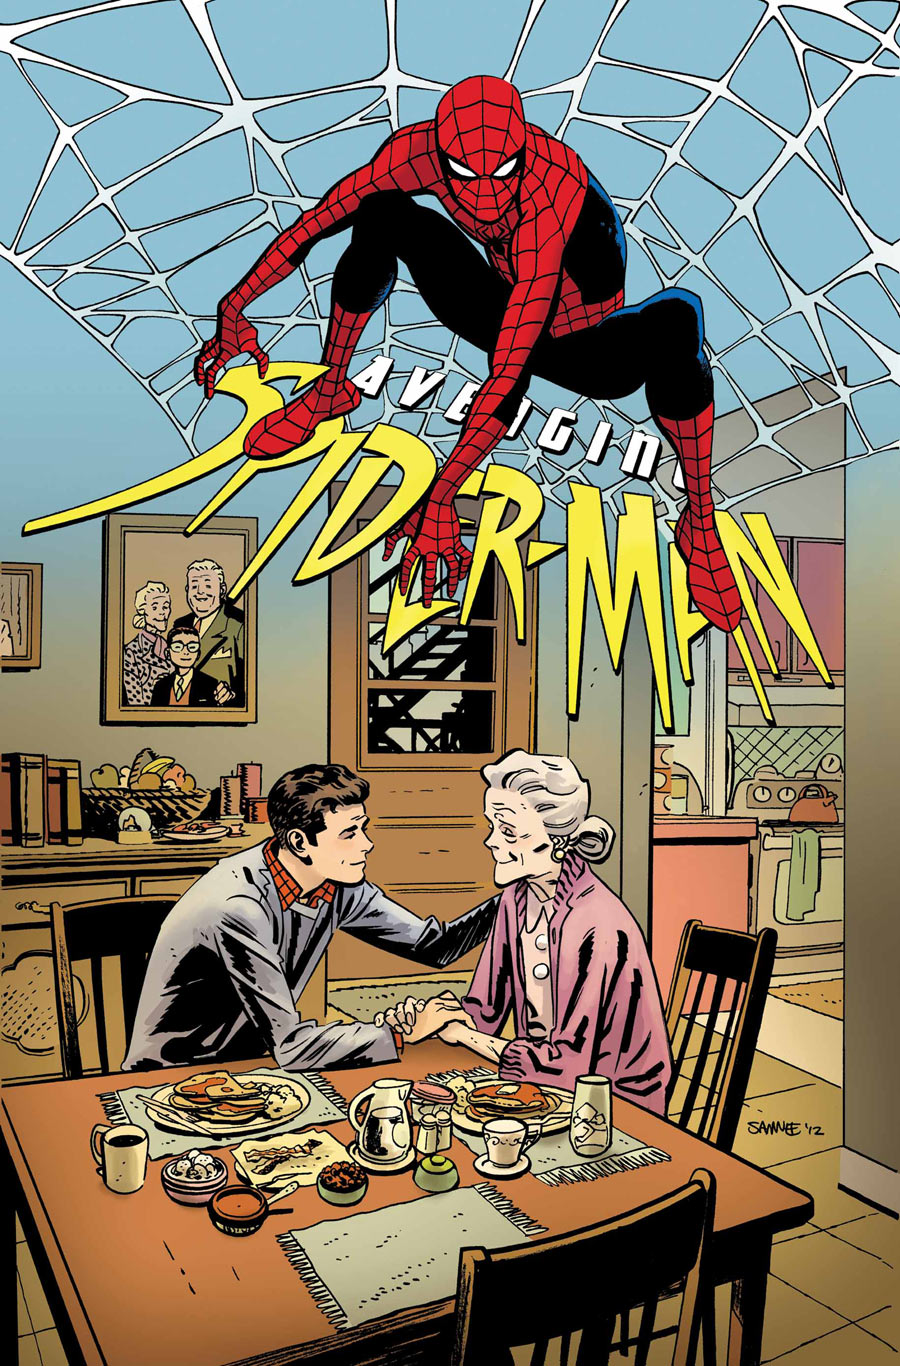 Avenging Spider-Man #11 - Chris Samnee